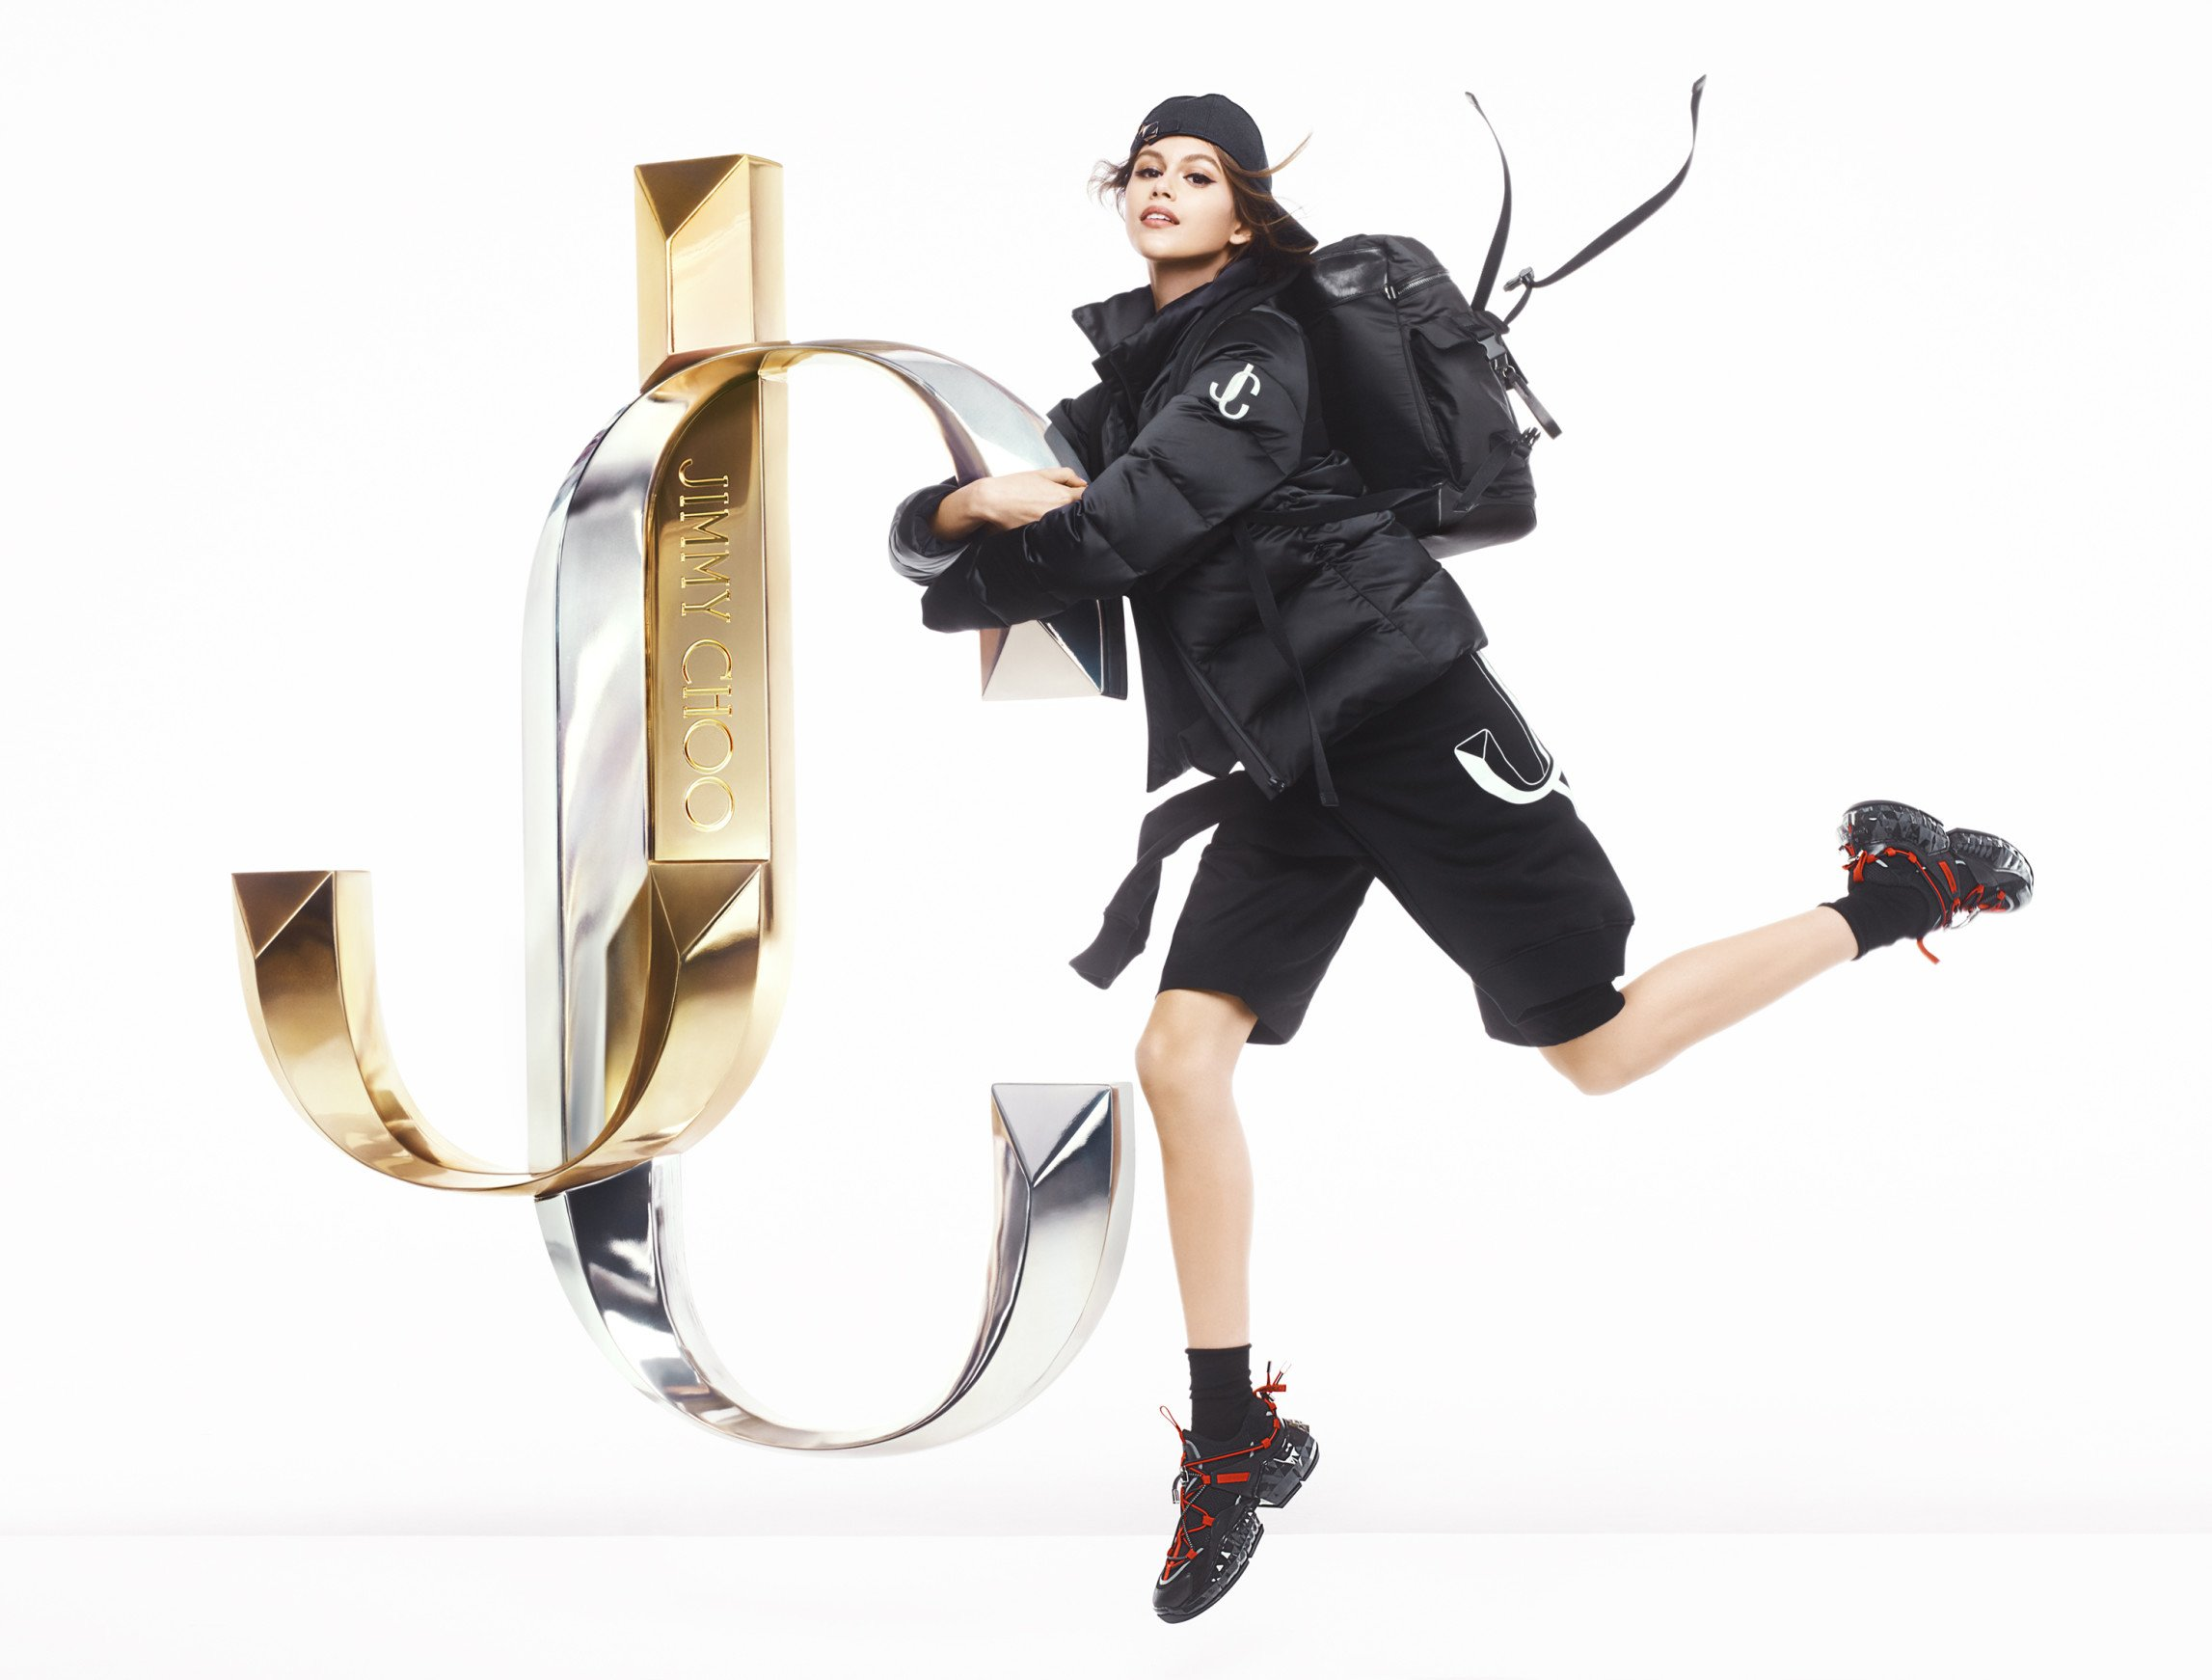 Jimmy Choo Unveils Autumn Winter 2019 Campaign Starring Kaia Gerber Photographed by Steven Meisel